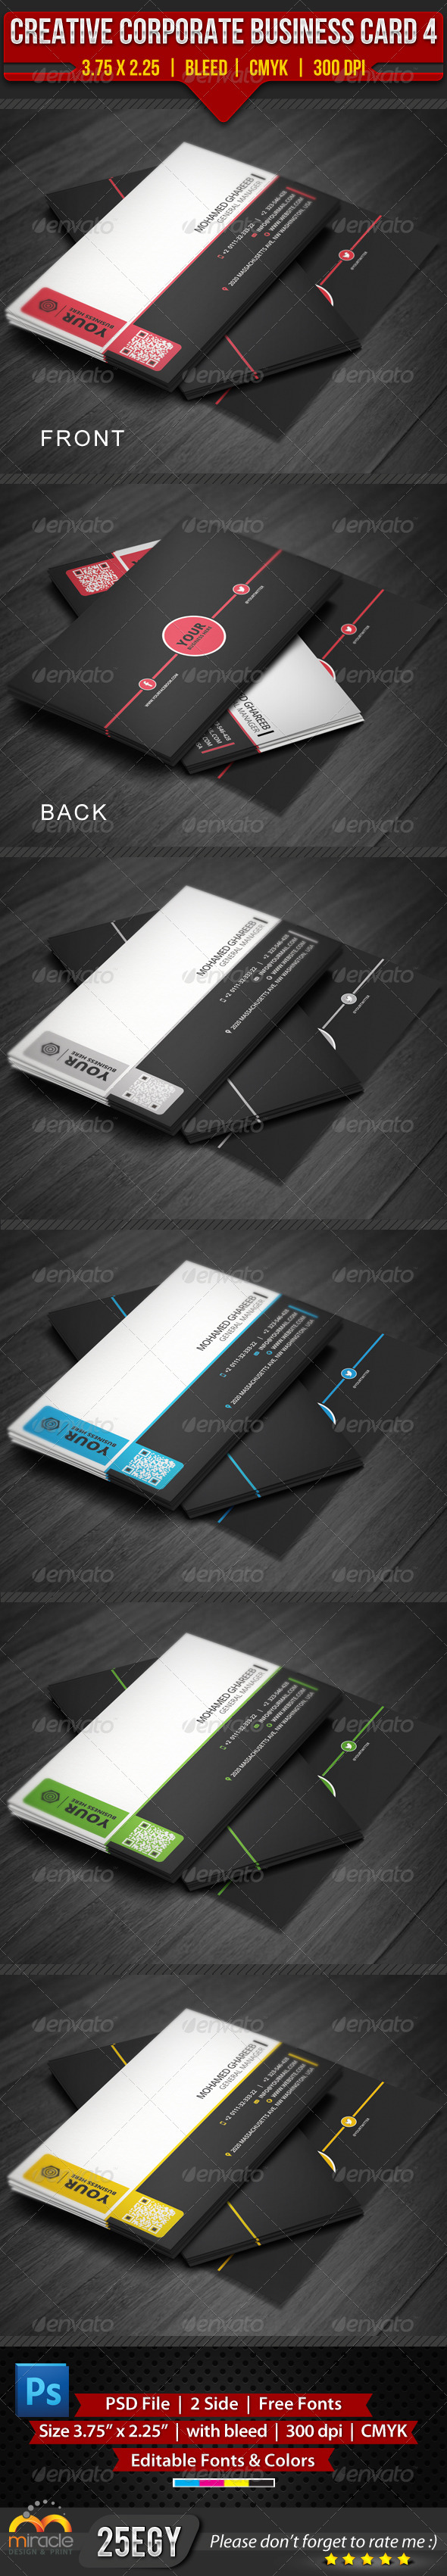 GraphicRiver Creative Corporate Business Card 4 3940449